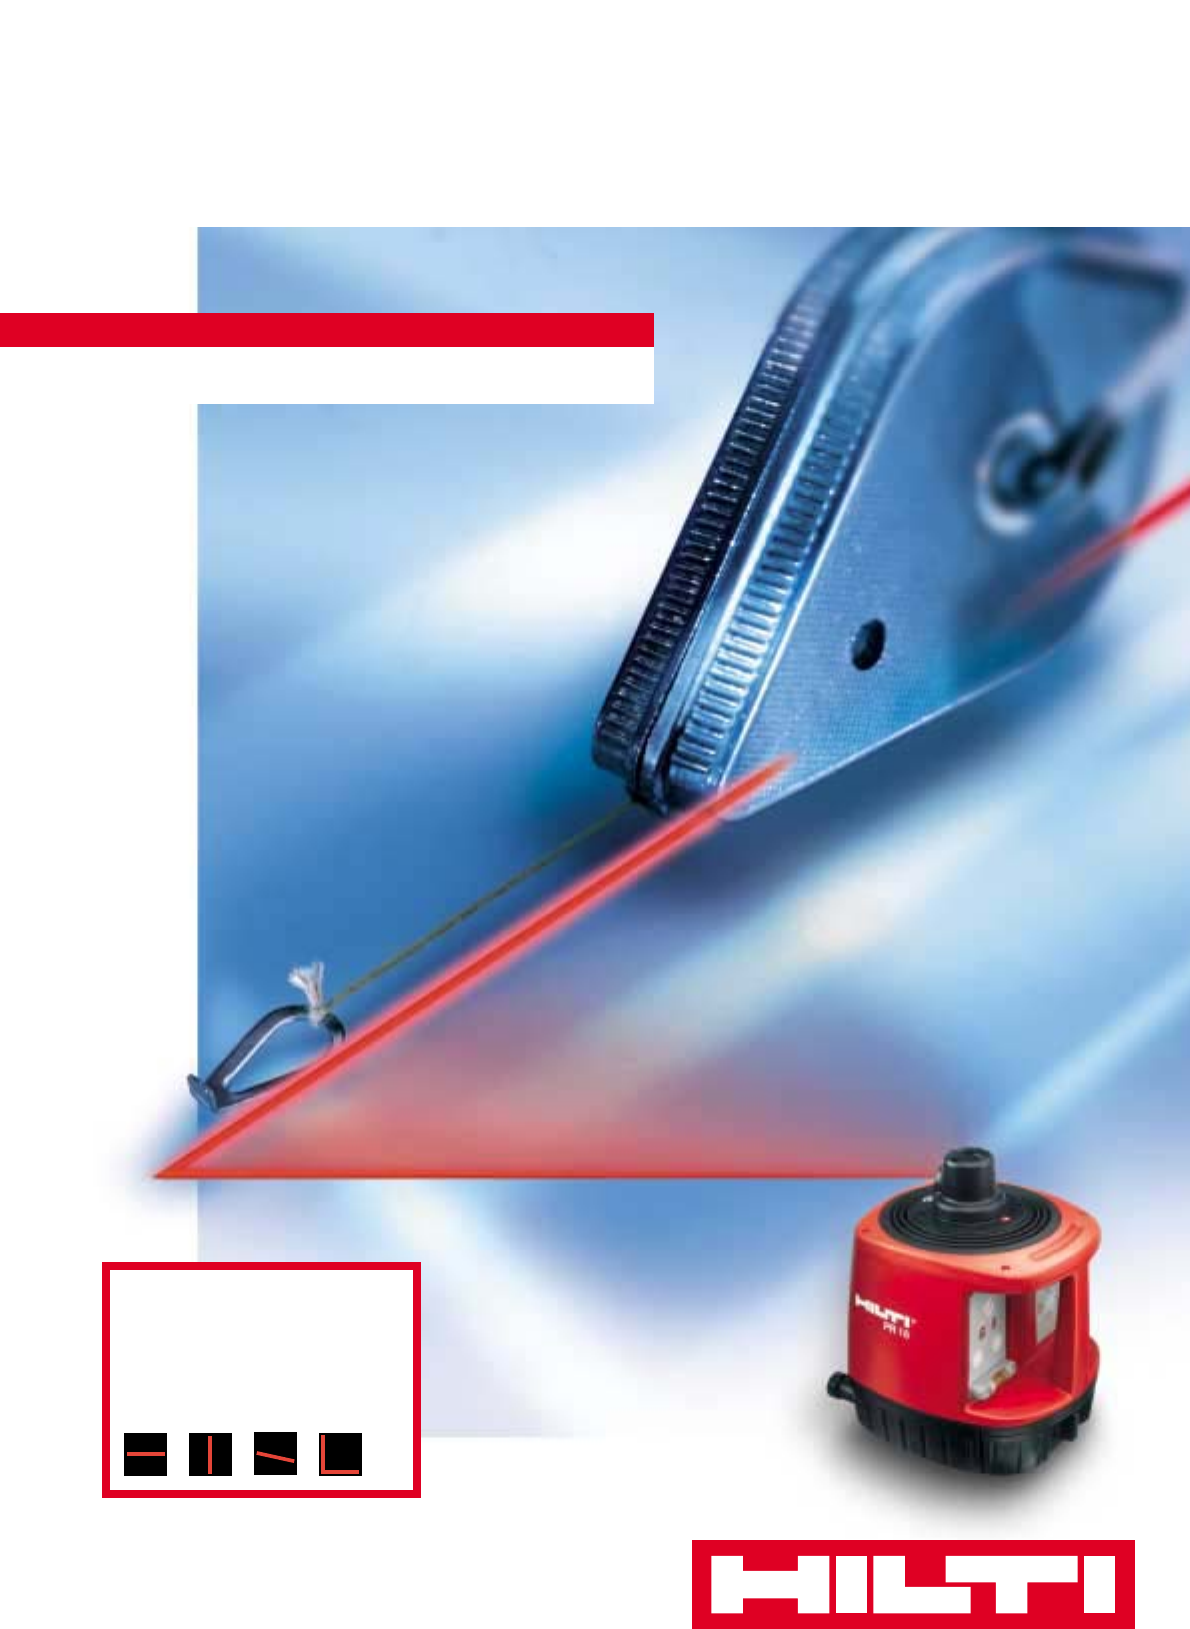 hilti laser level pr 16 user guide manualsonline com rh powertool manualsonline com User 1C V8 2 PR 16 Denial